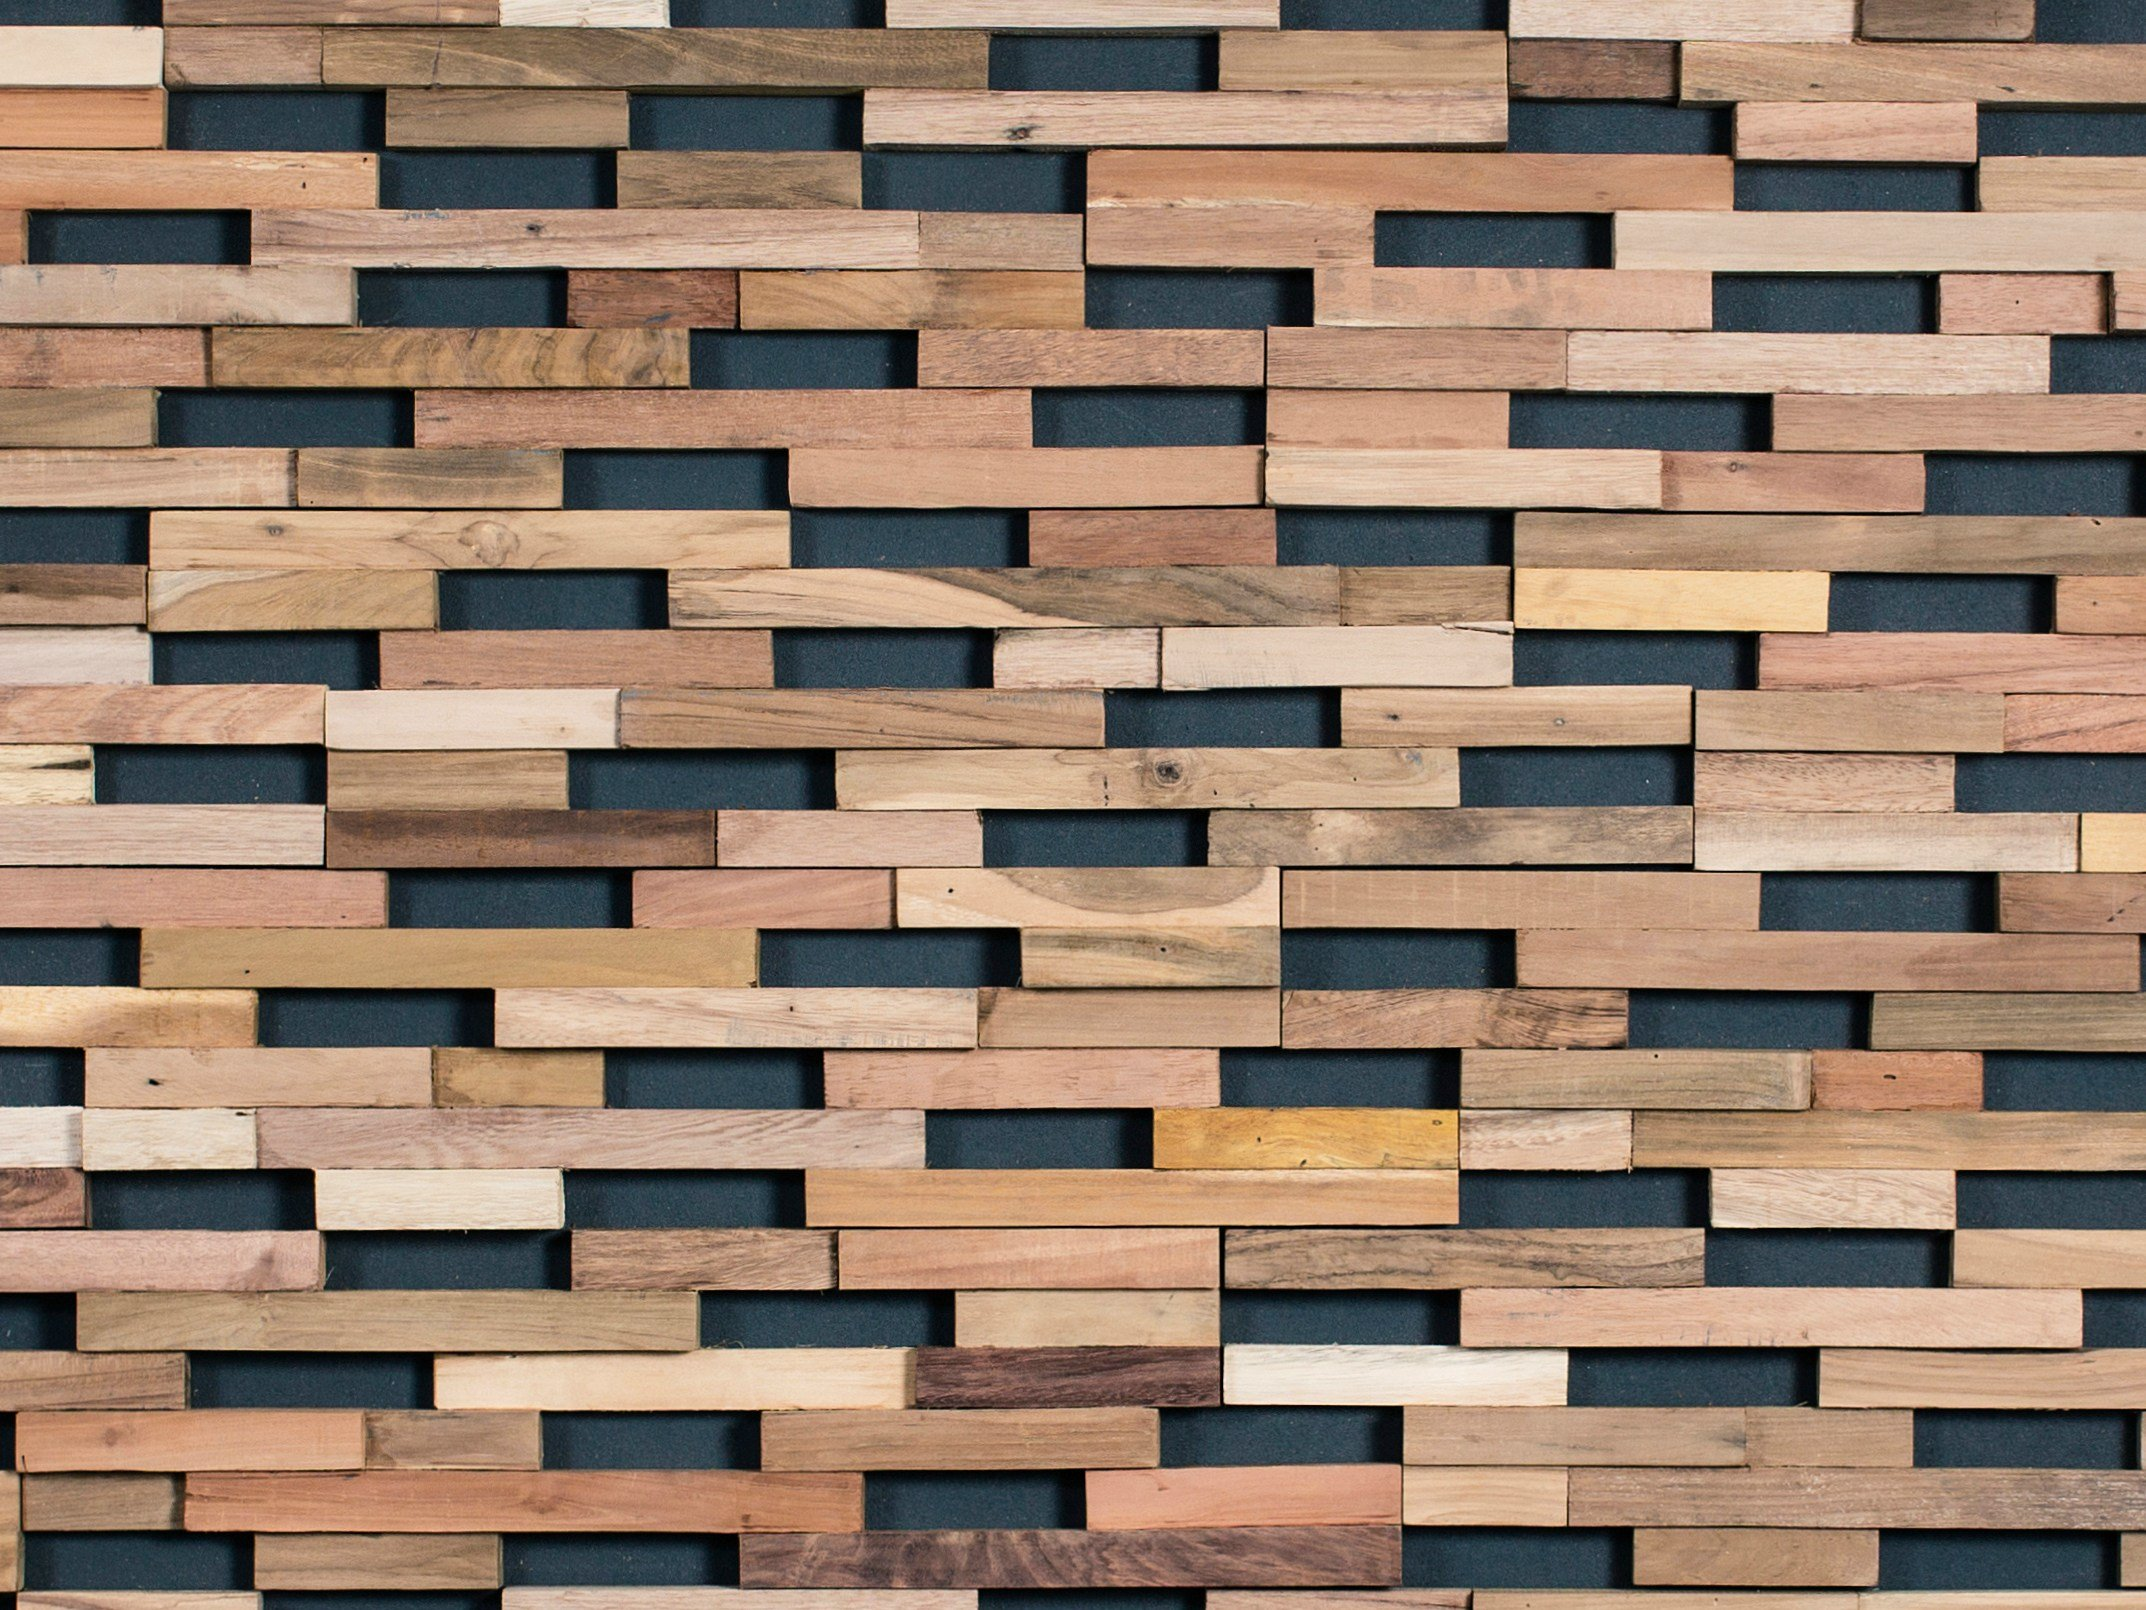 Indoor Wooden 3d Wall Cladding Springs By Wonderwall Studios